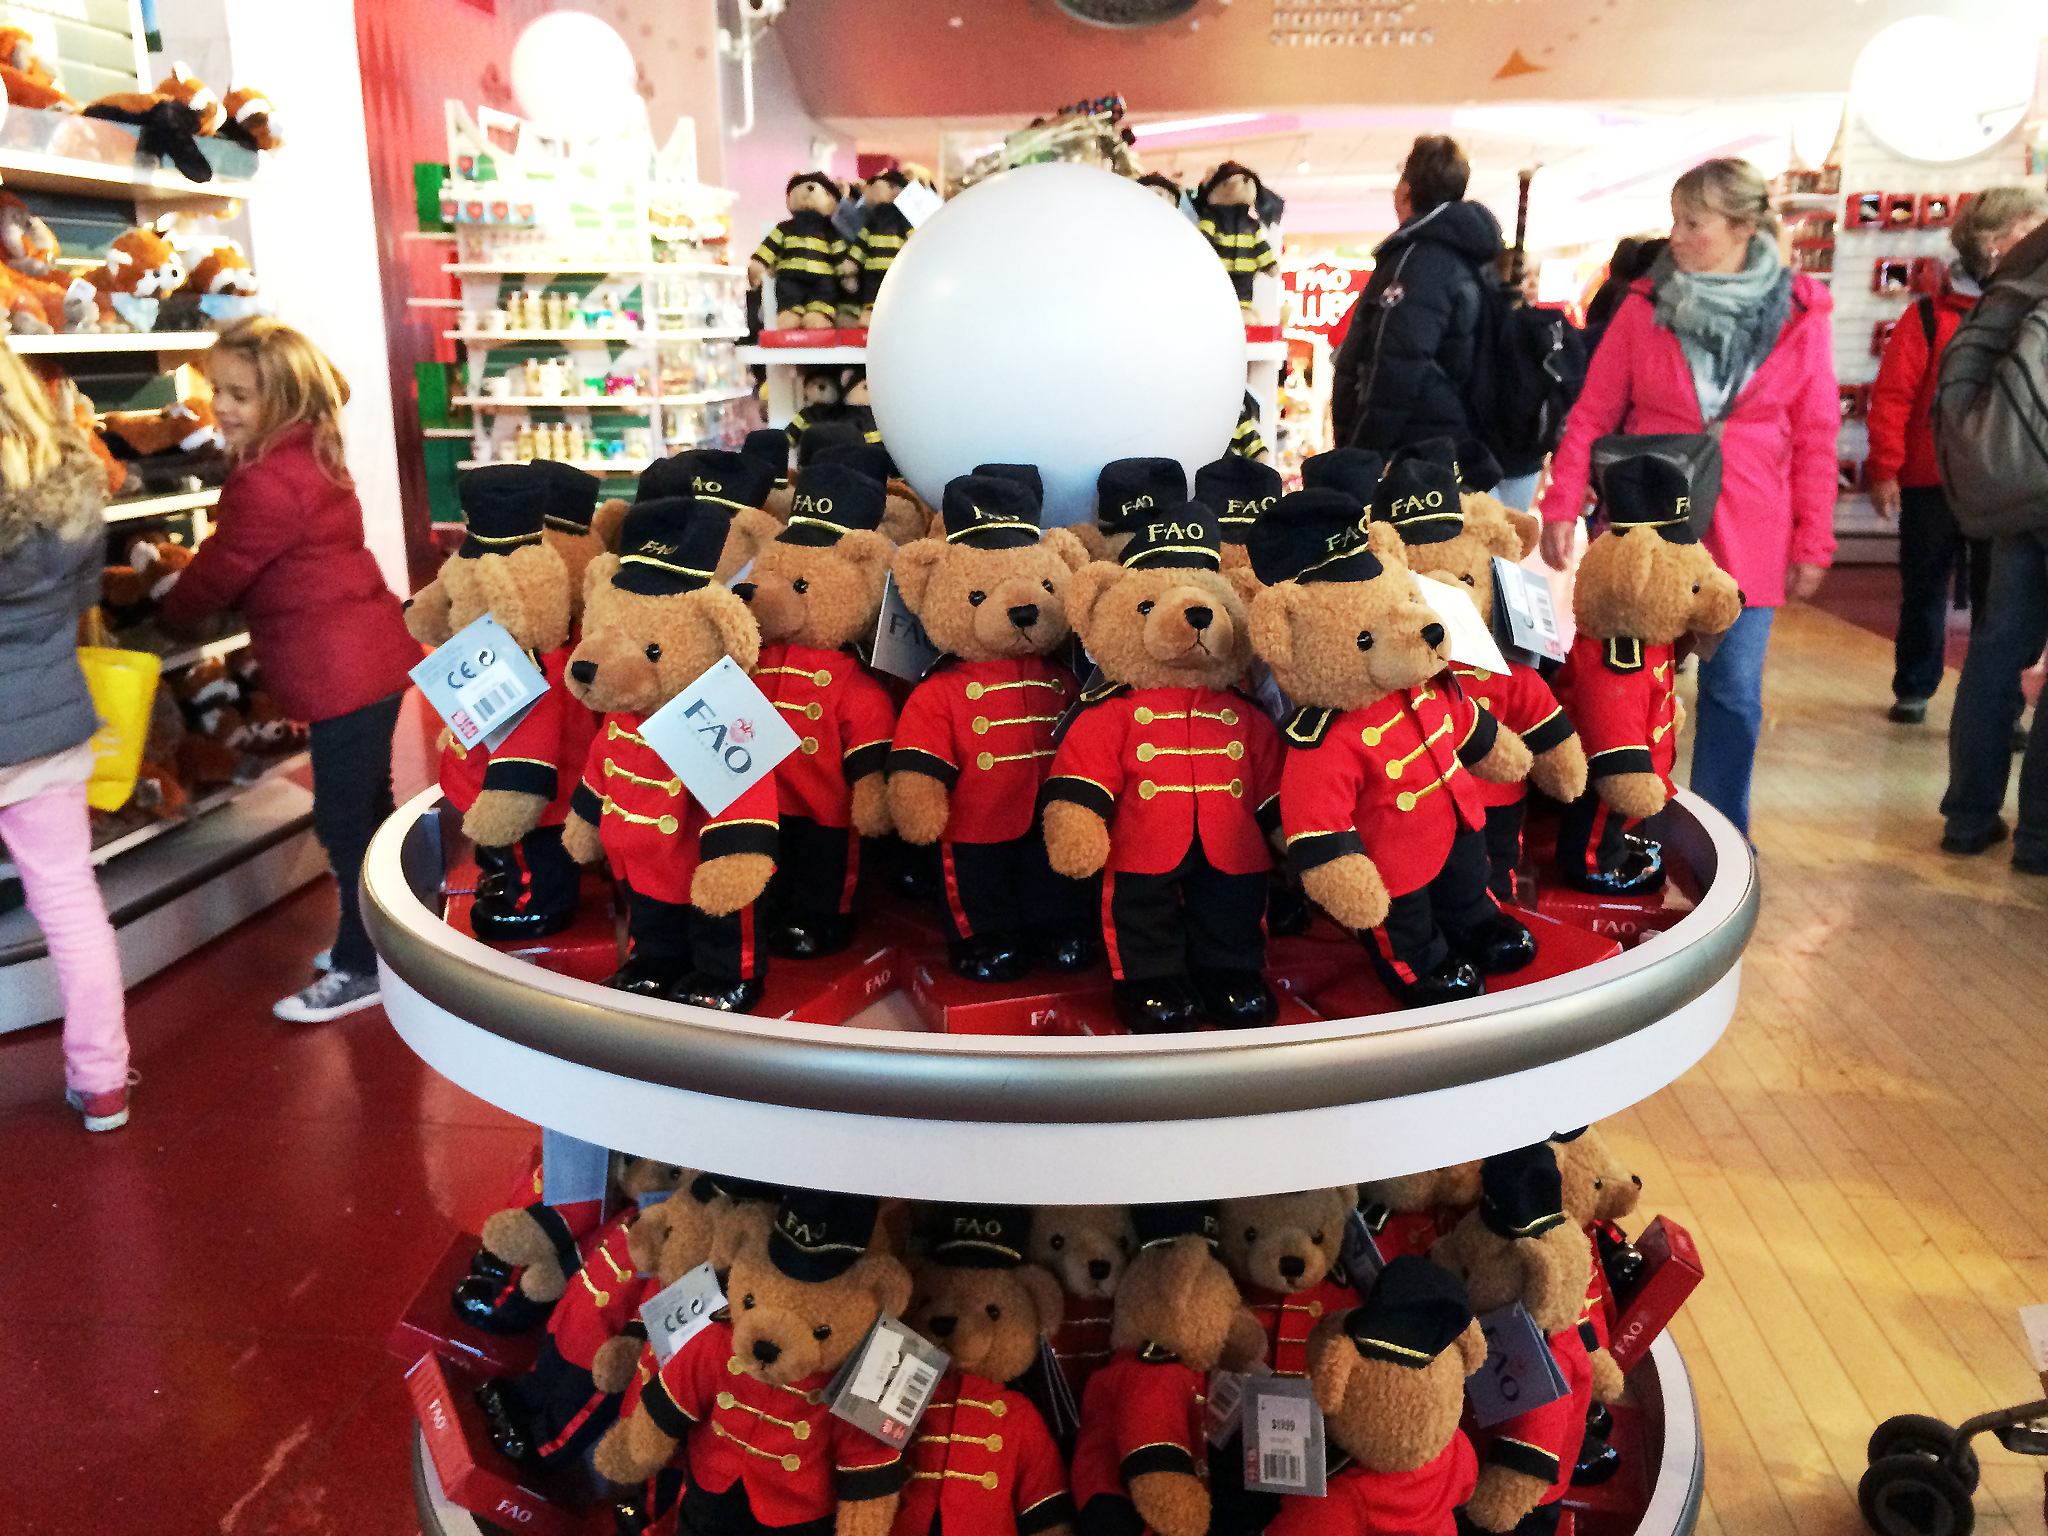 FAO Schwarz teddy bears in New York. Photo by alphacityguides.